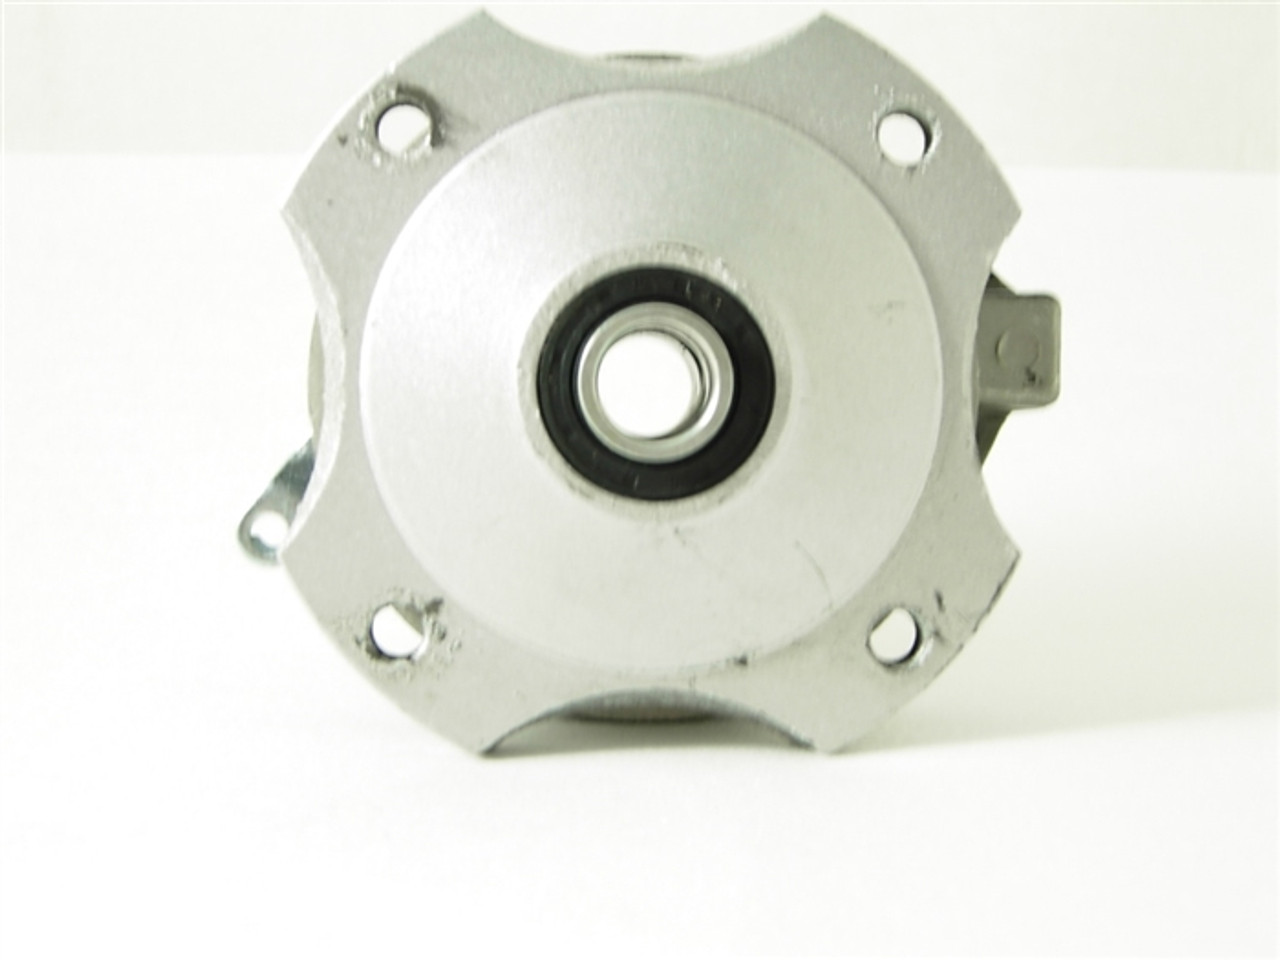 BRAKE DRUM ASSEMBLY (Right Side) 11721-A96-11